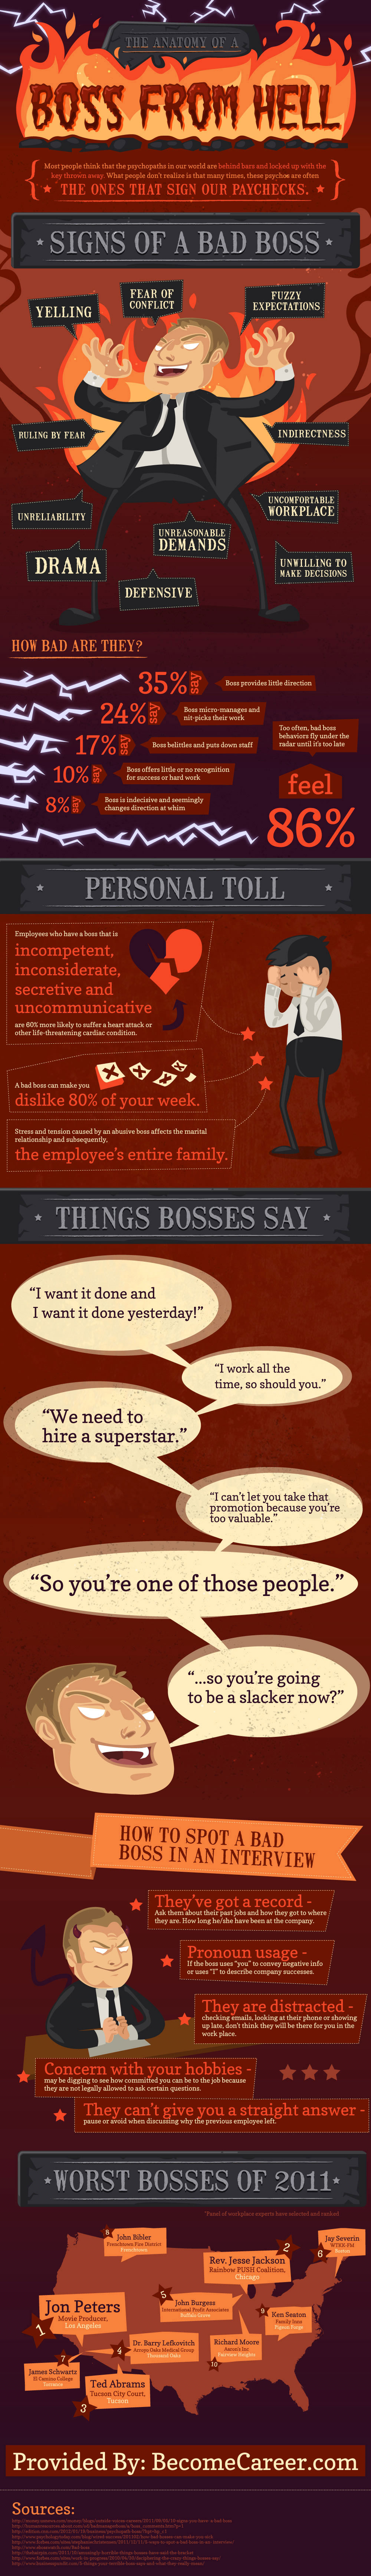 boss from hell Is Your Boss a Psychopath? [Infographic]